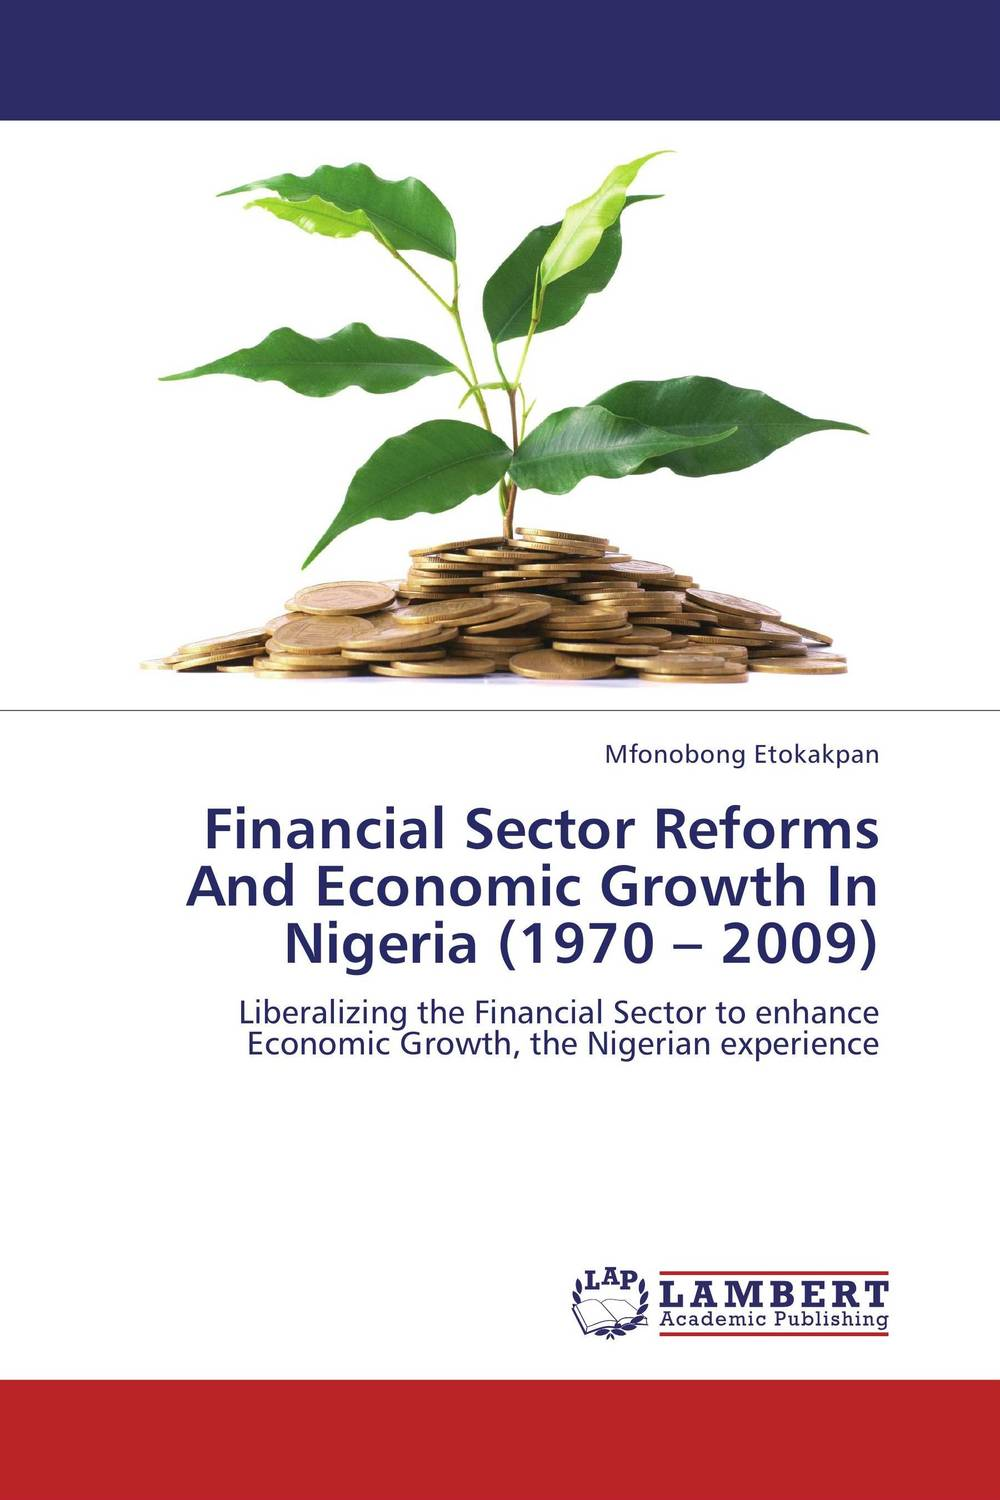 Financial Sector Reforms And Economic Growth In Nigeria (1970 – 2009) economic growth in nigeria